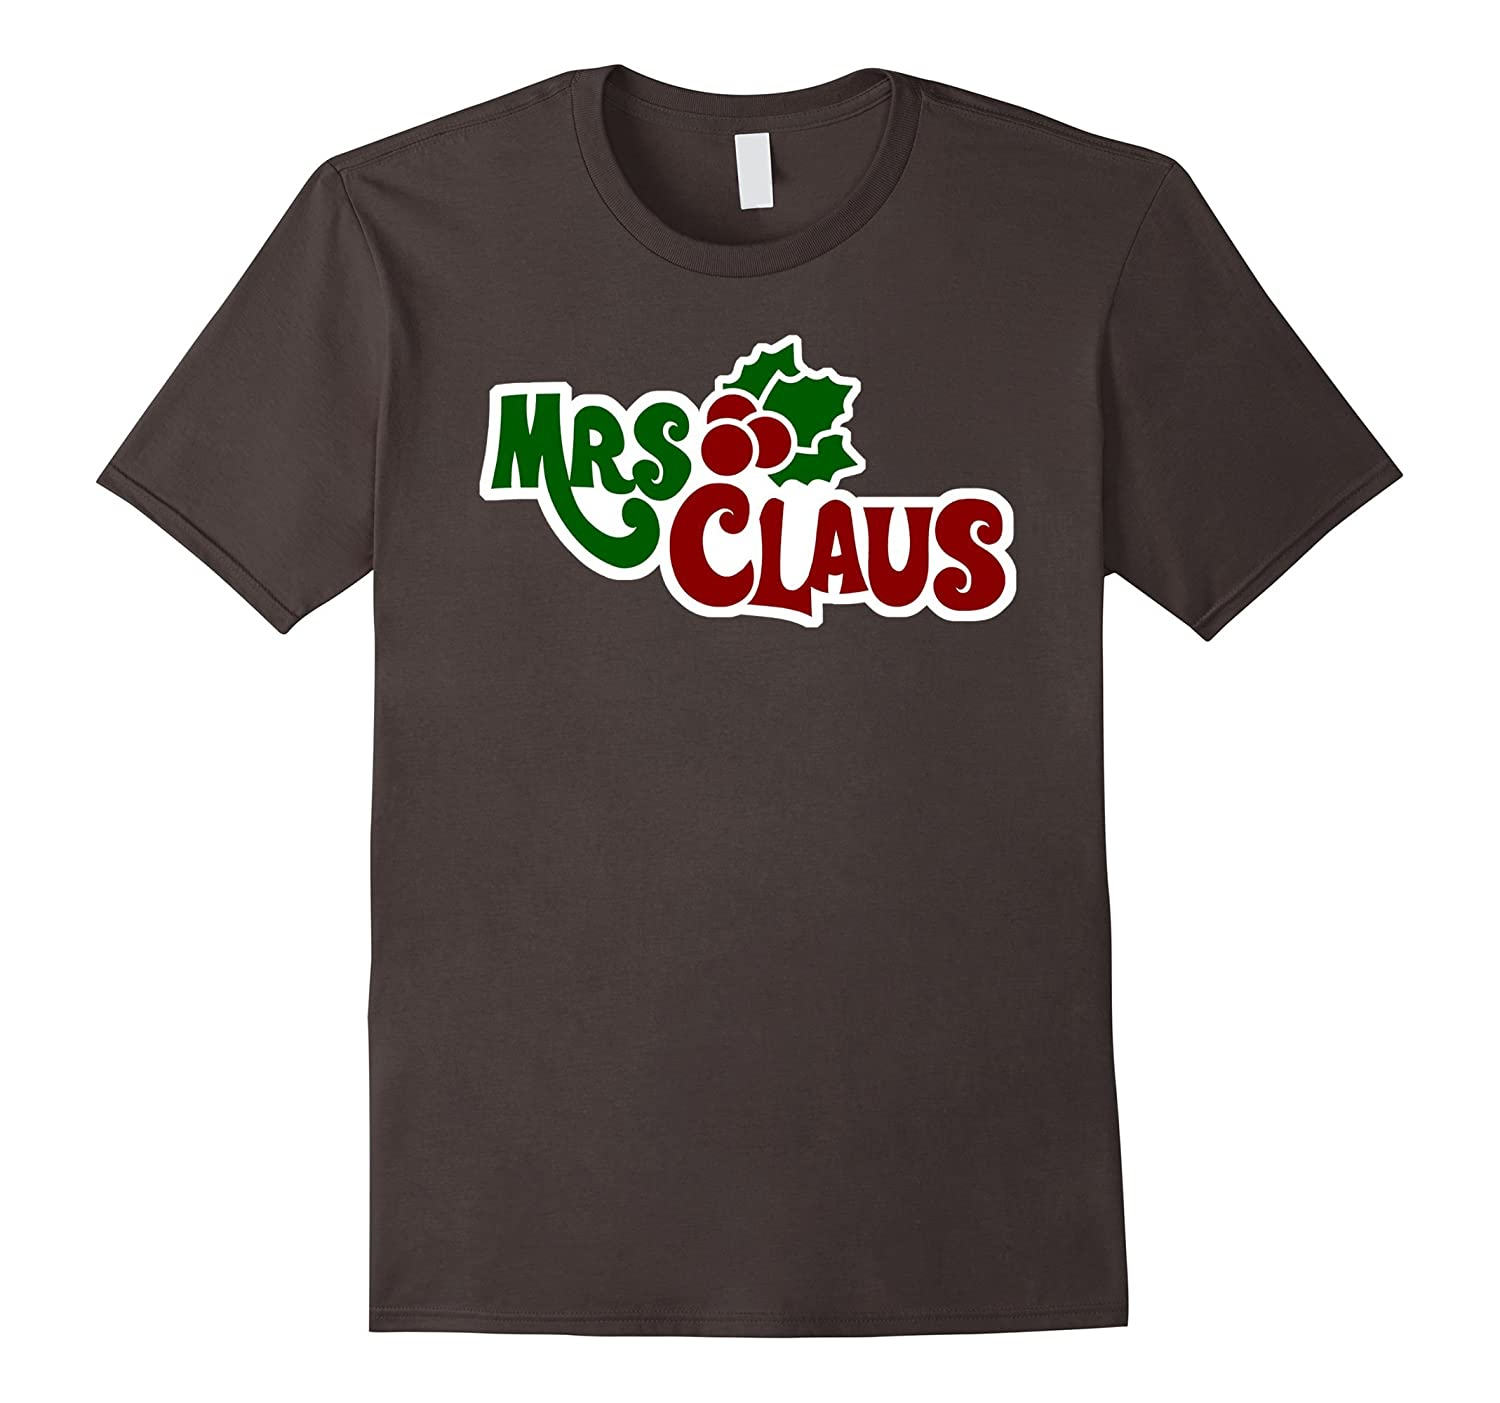 Claus Matching Couple Dark Grey Shirts And Mrs Details about  /Mr